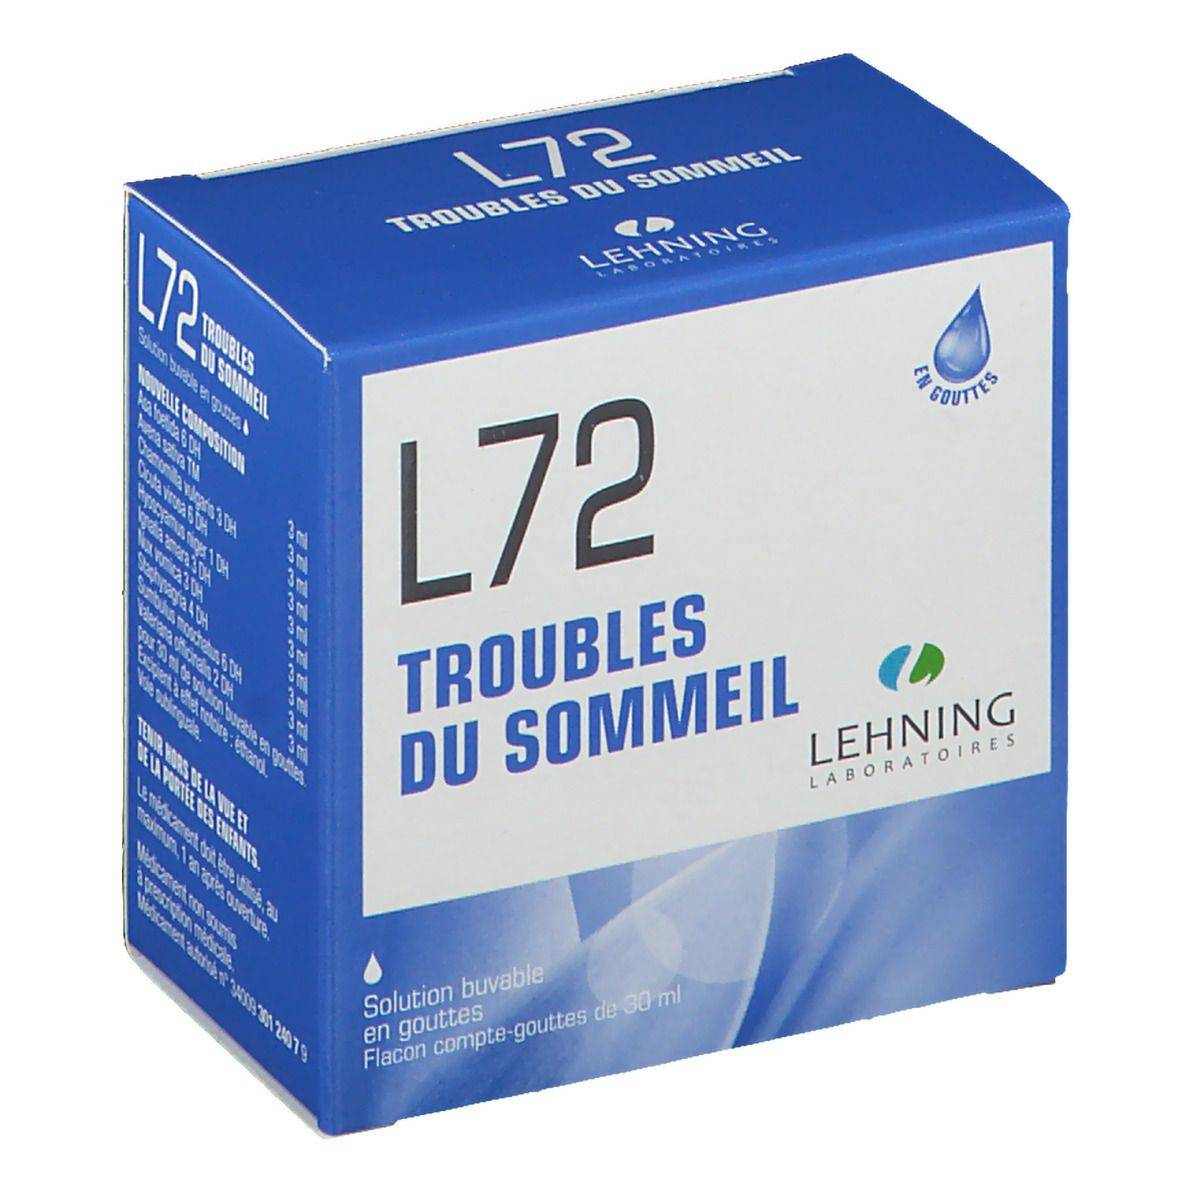 LEHNING L72 Solution buvable en gouttes ml solution(s)